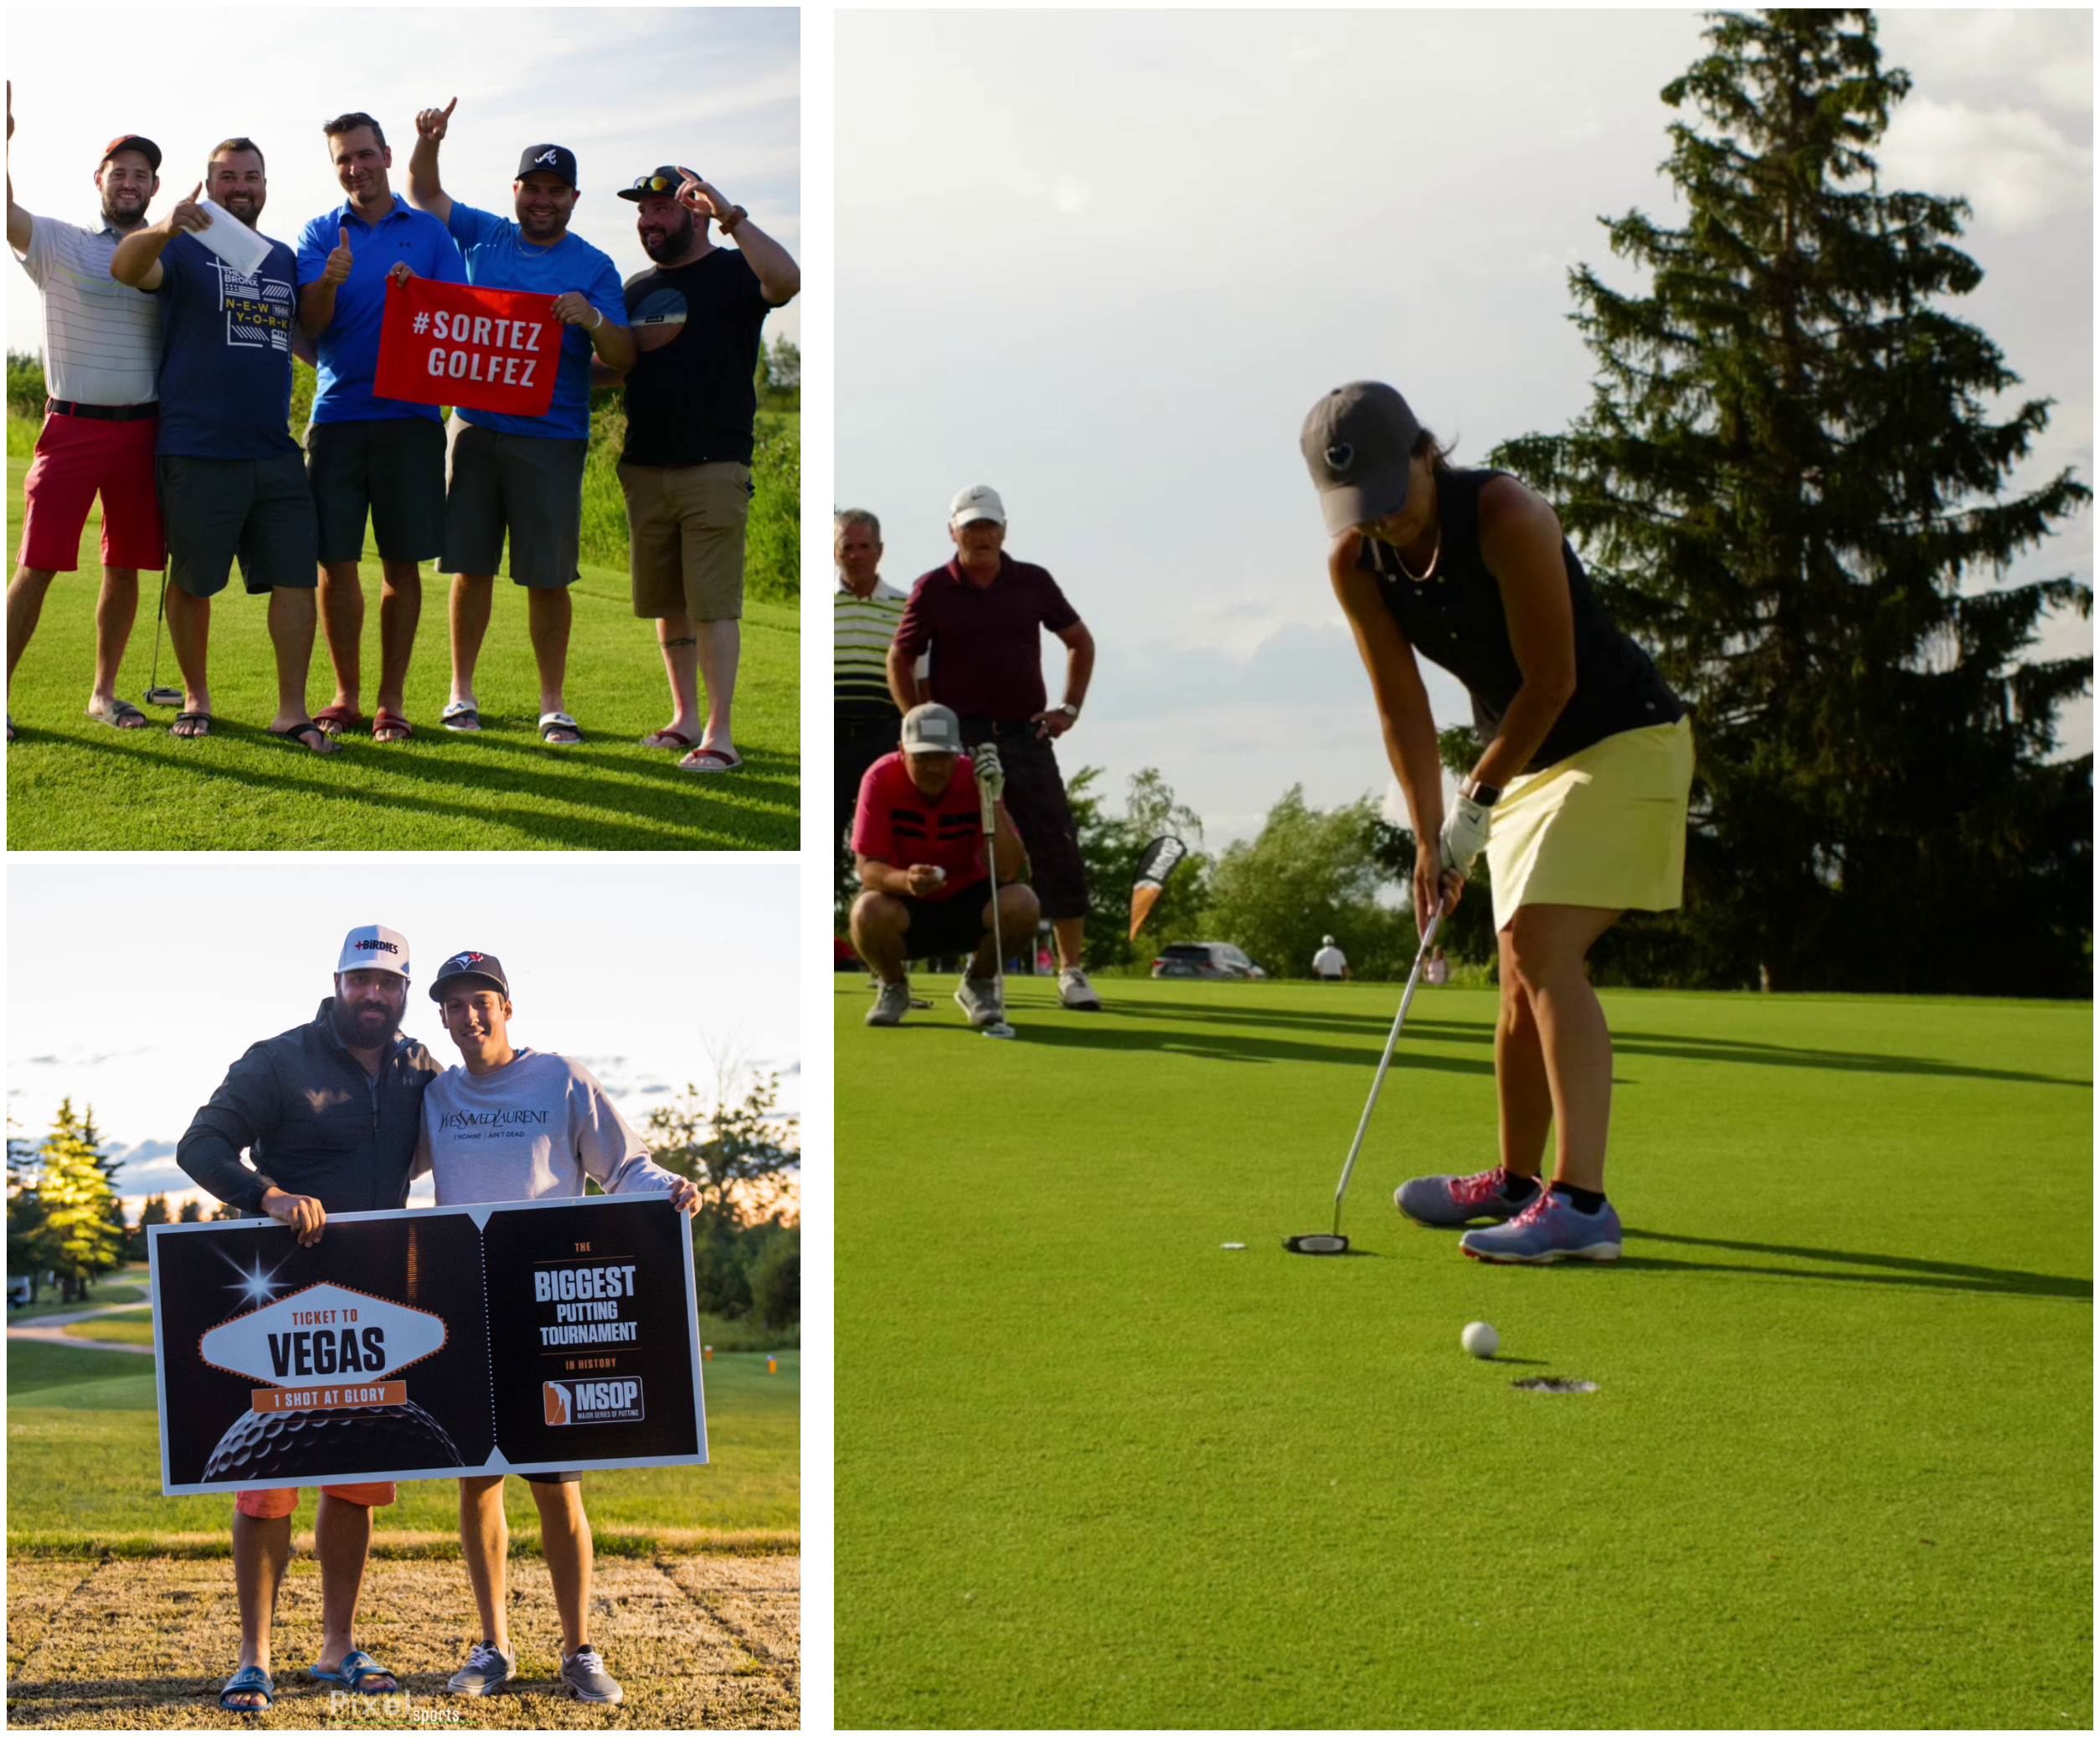 Golf Saint Prime Accueil photos du Week-end golf@2x